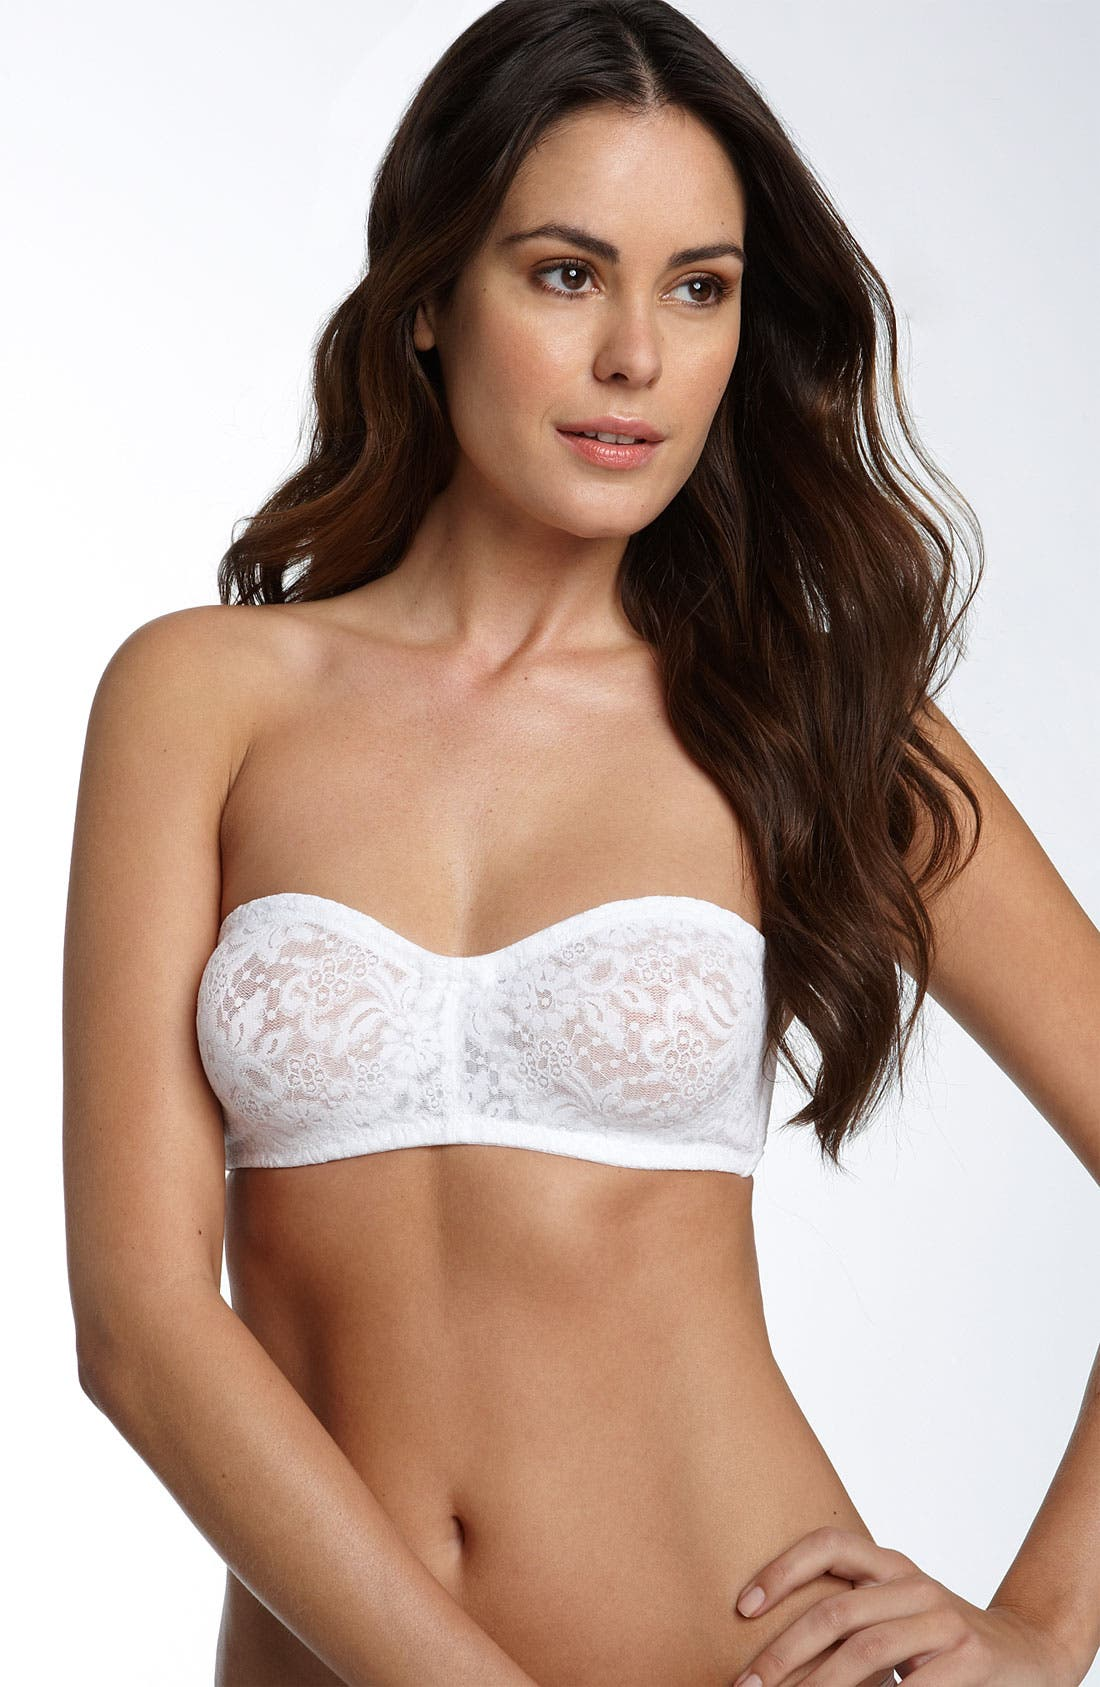 'Halo 65449' Strapless Convertible Underwire Bra,                             Main thumbnail 1, color,                             100